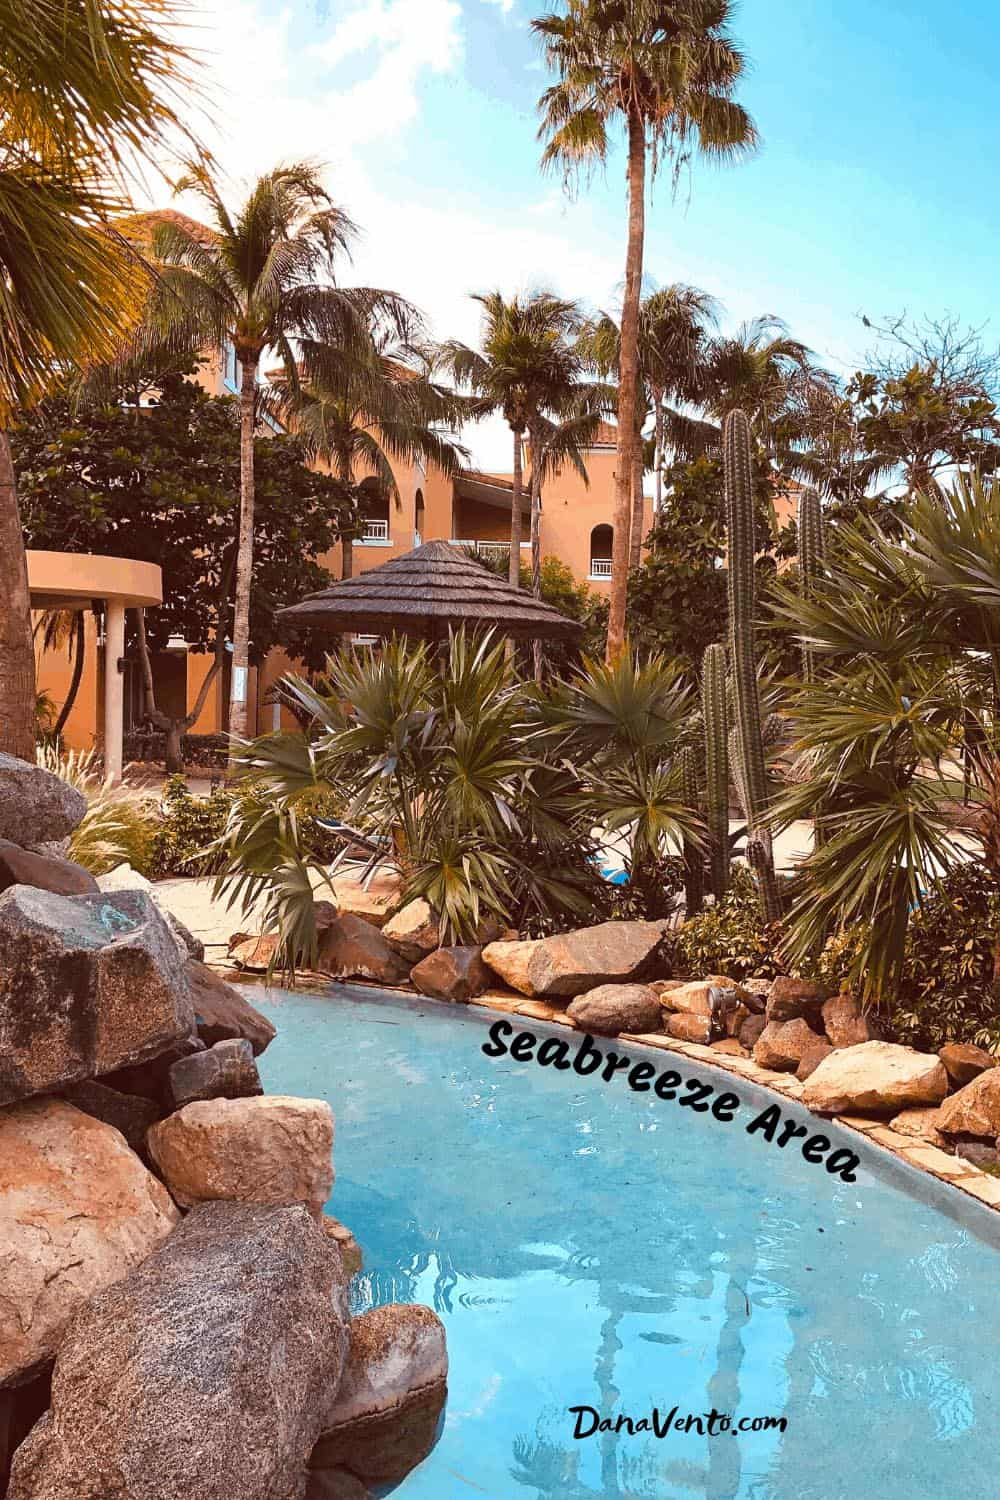 headed to seabreeze pool area mega all inclusive package